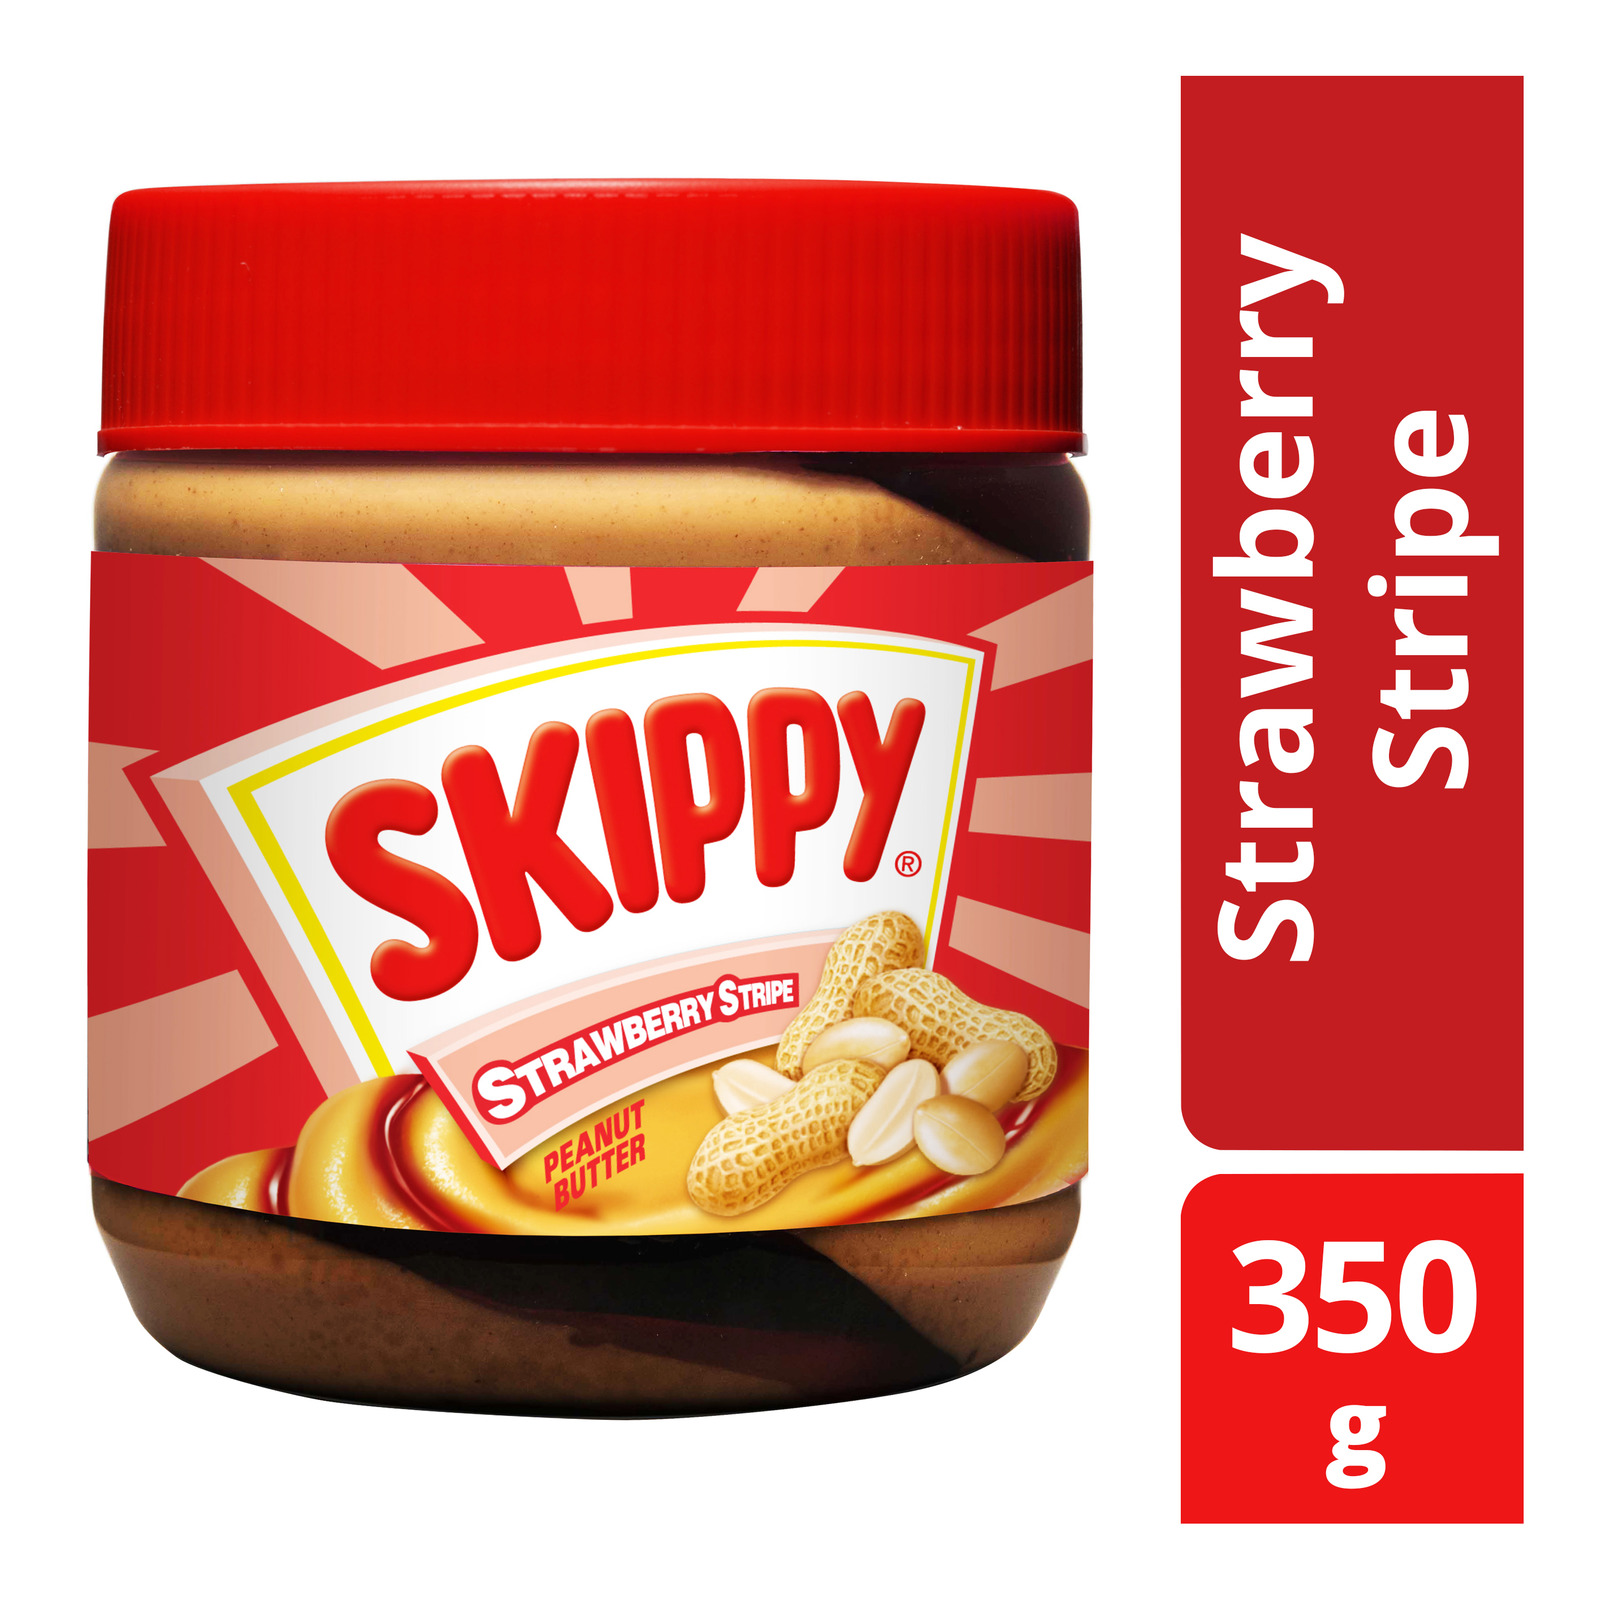 Skippy Peanut Butter Spread - Strawberry Stripe